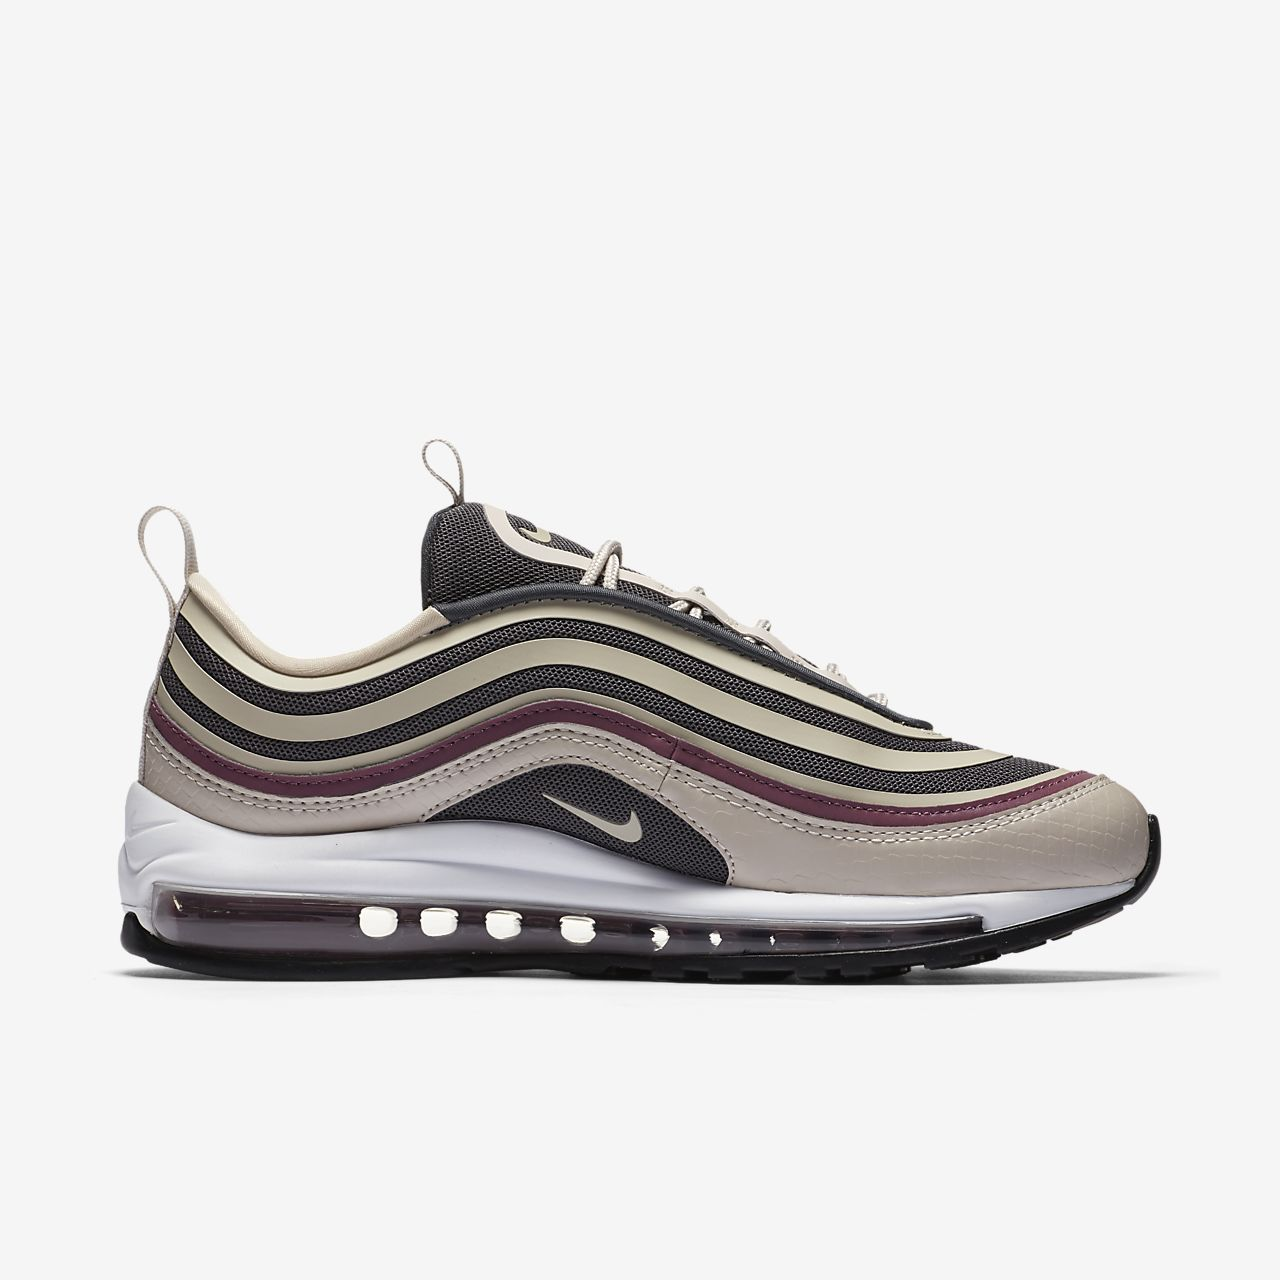 Nike Air Max 97 Chaussures De Sport Ultra '17 - Gris wTwLaq1YLz